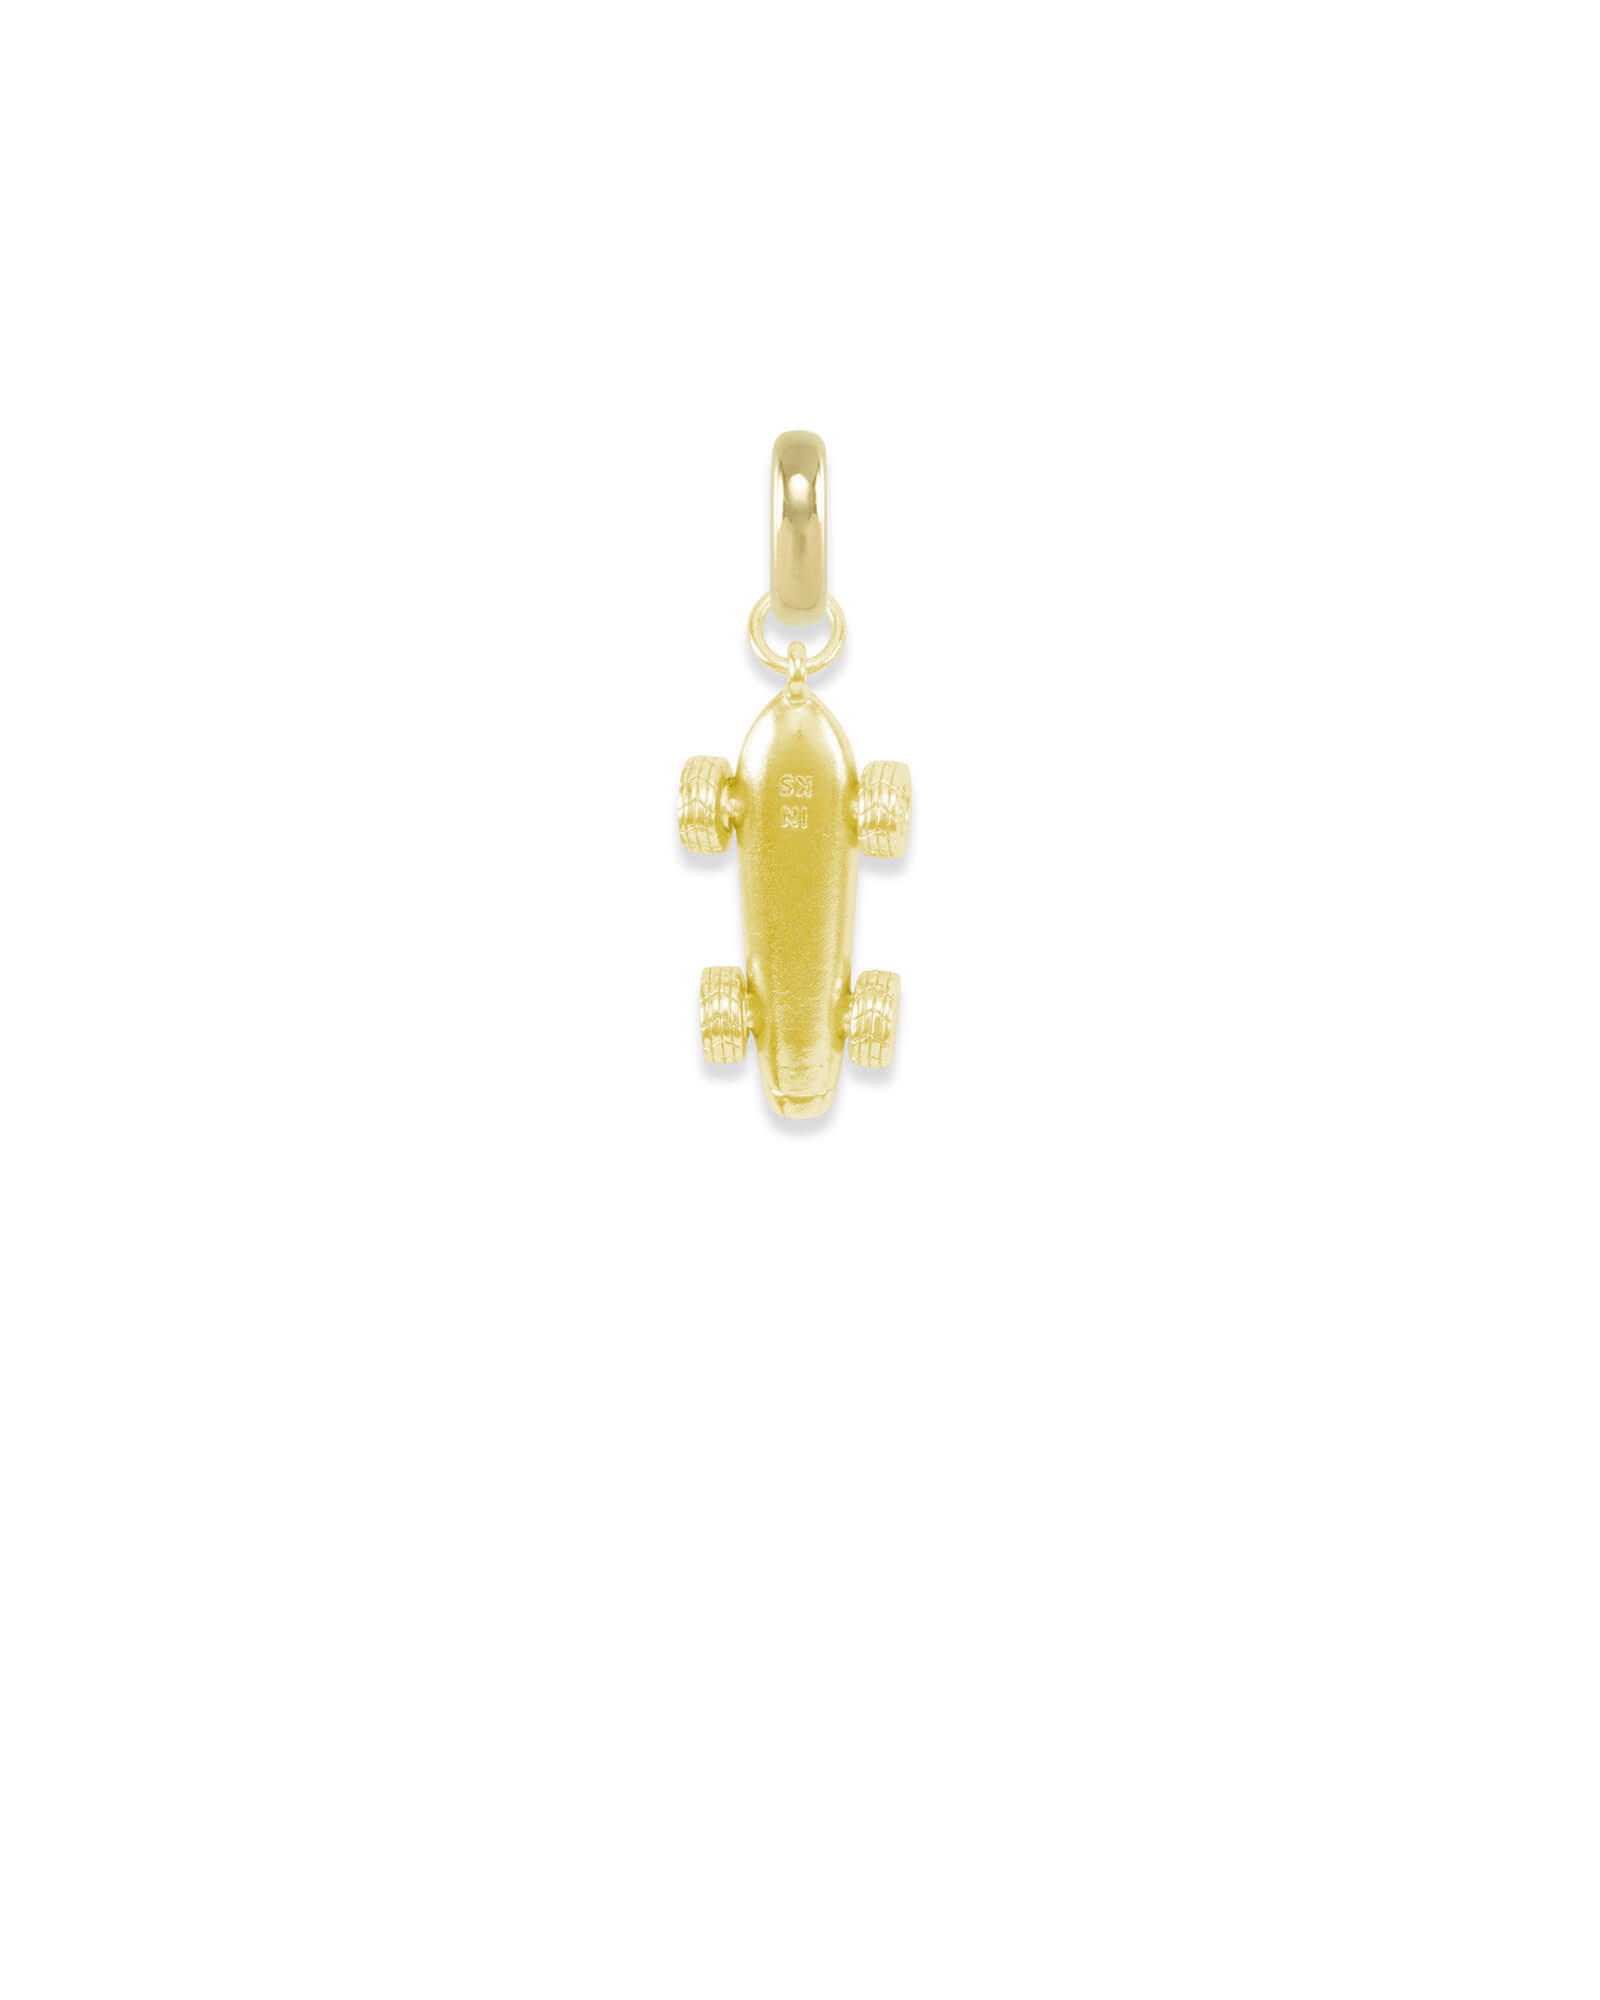 Indiana Race Car Charm in Gold